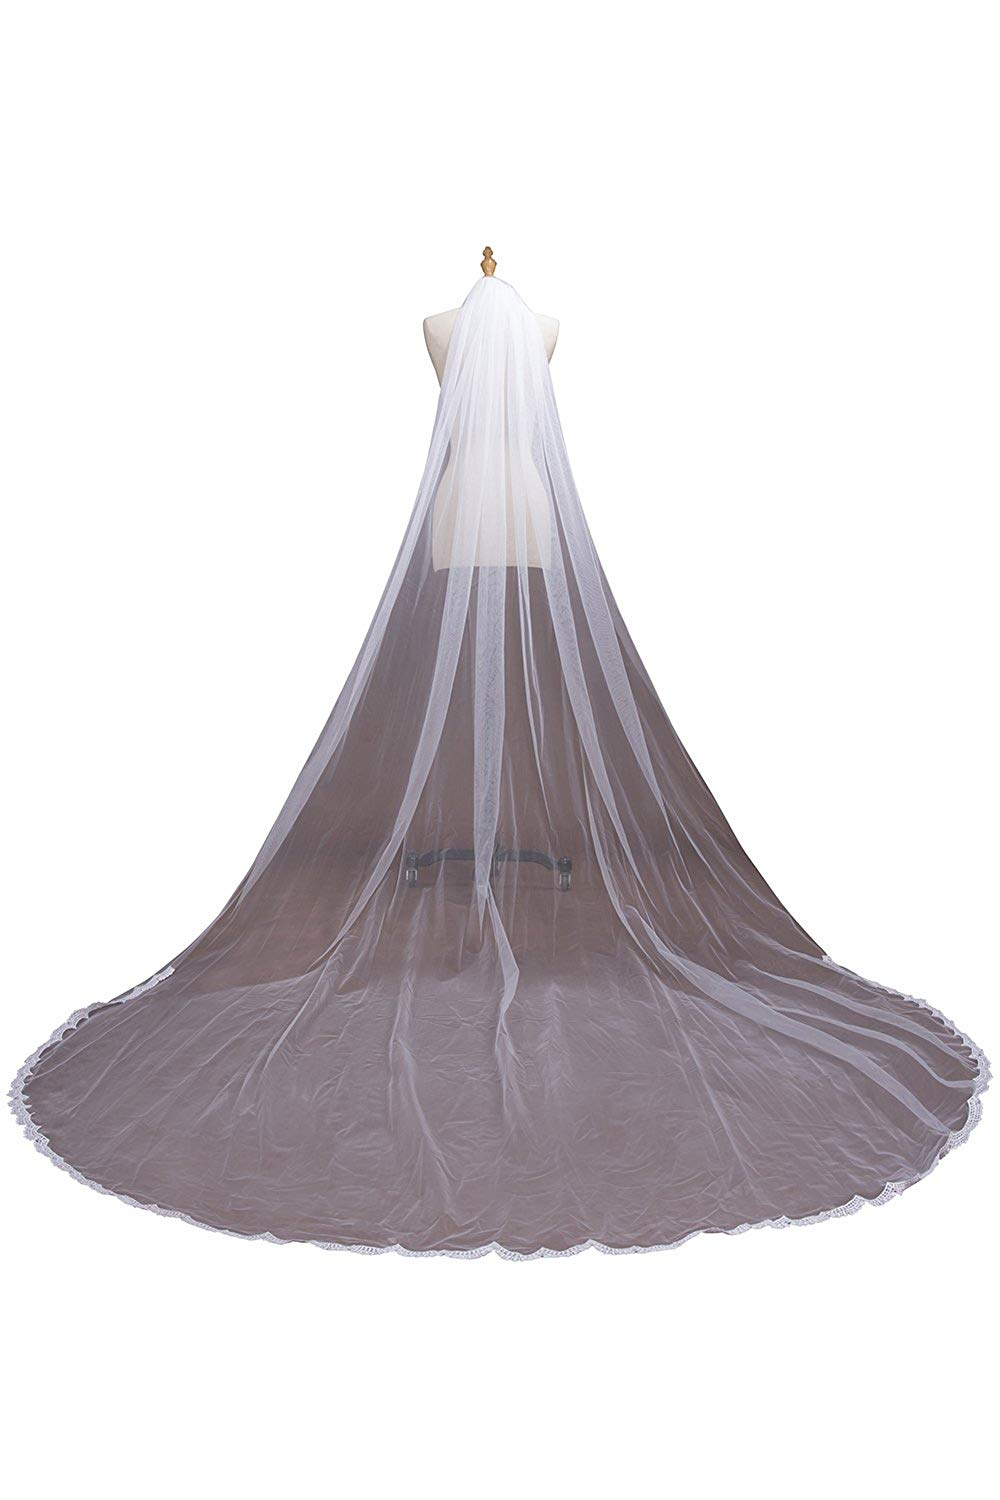 MisShow Women's 1 Tier Cathedral Lace Wedding Bridal Veil with Comb for Bride